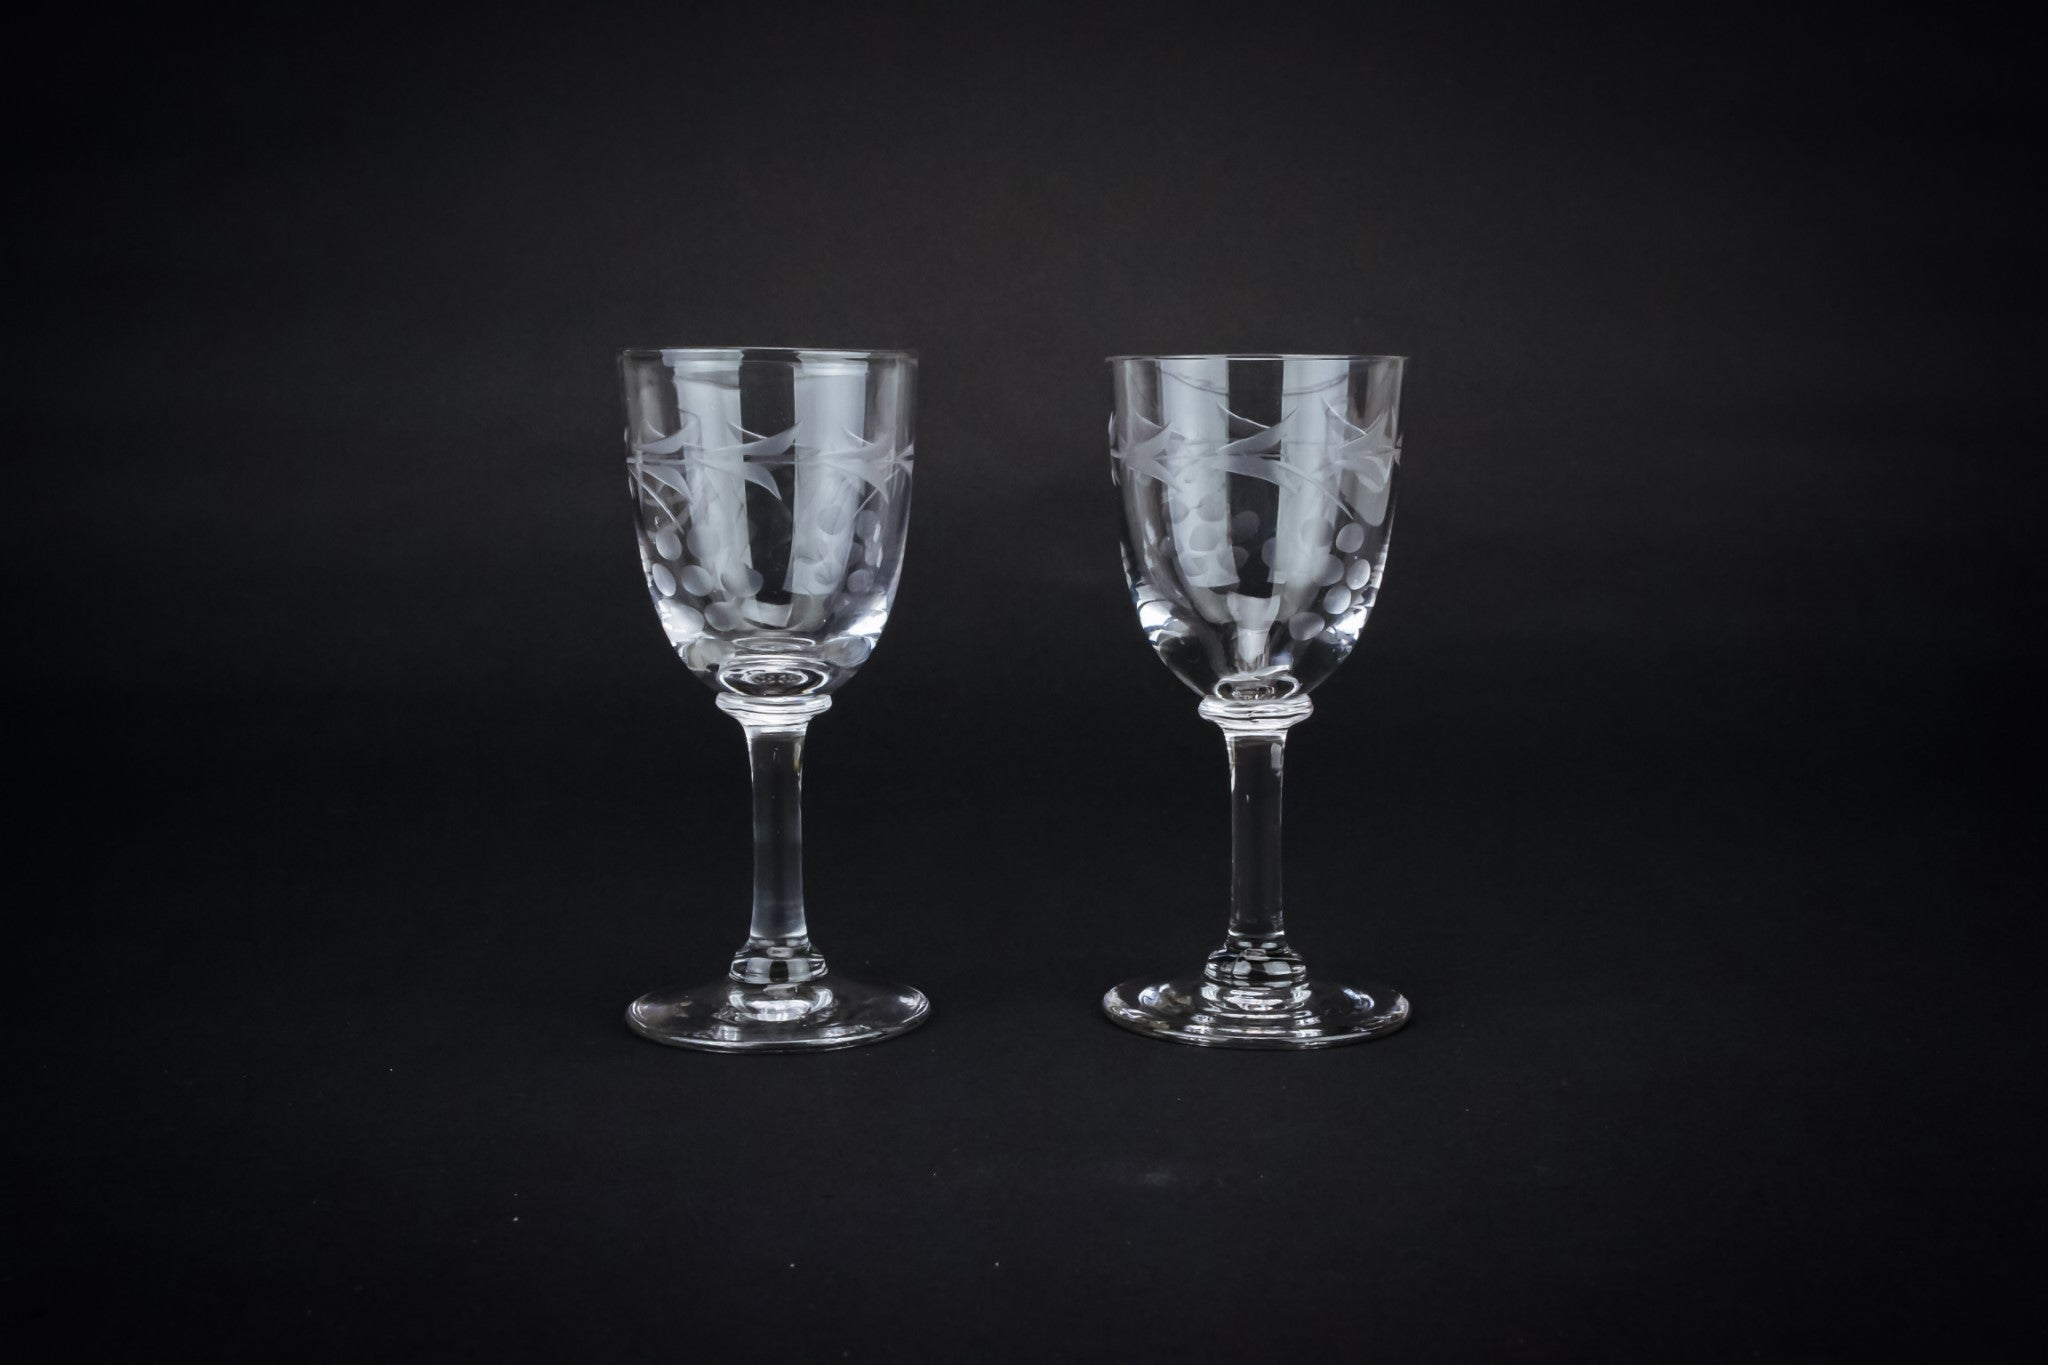 2 vodka shot stem glasses